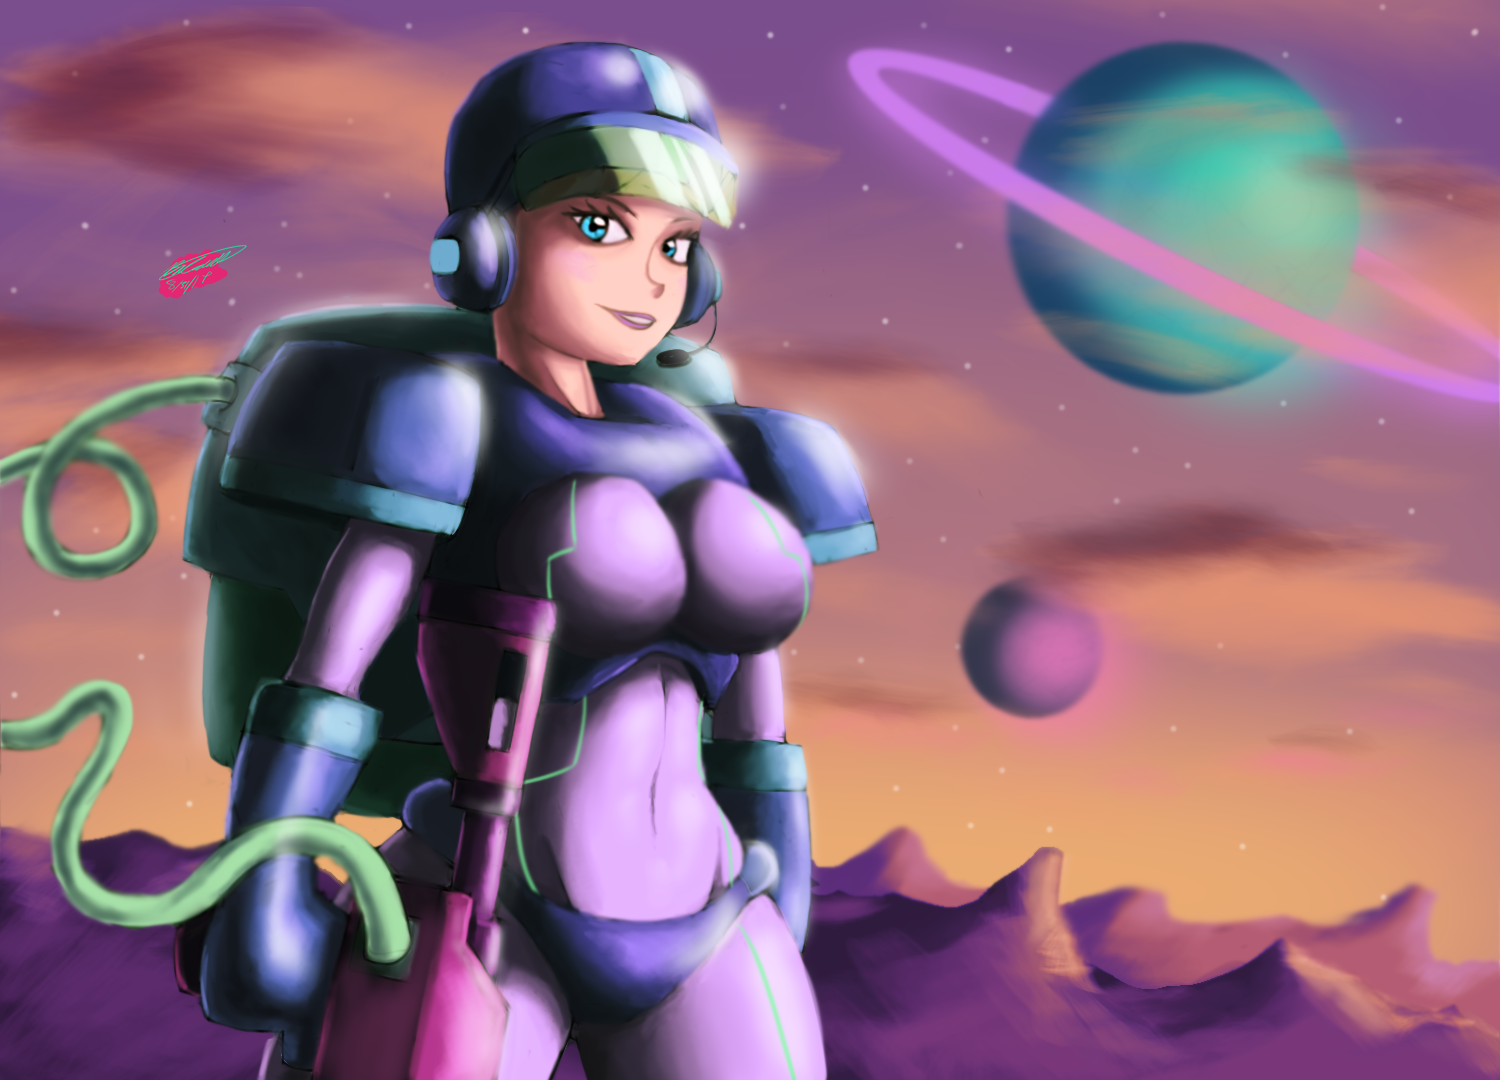 Colonial Space Soldier Girl